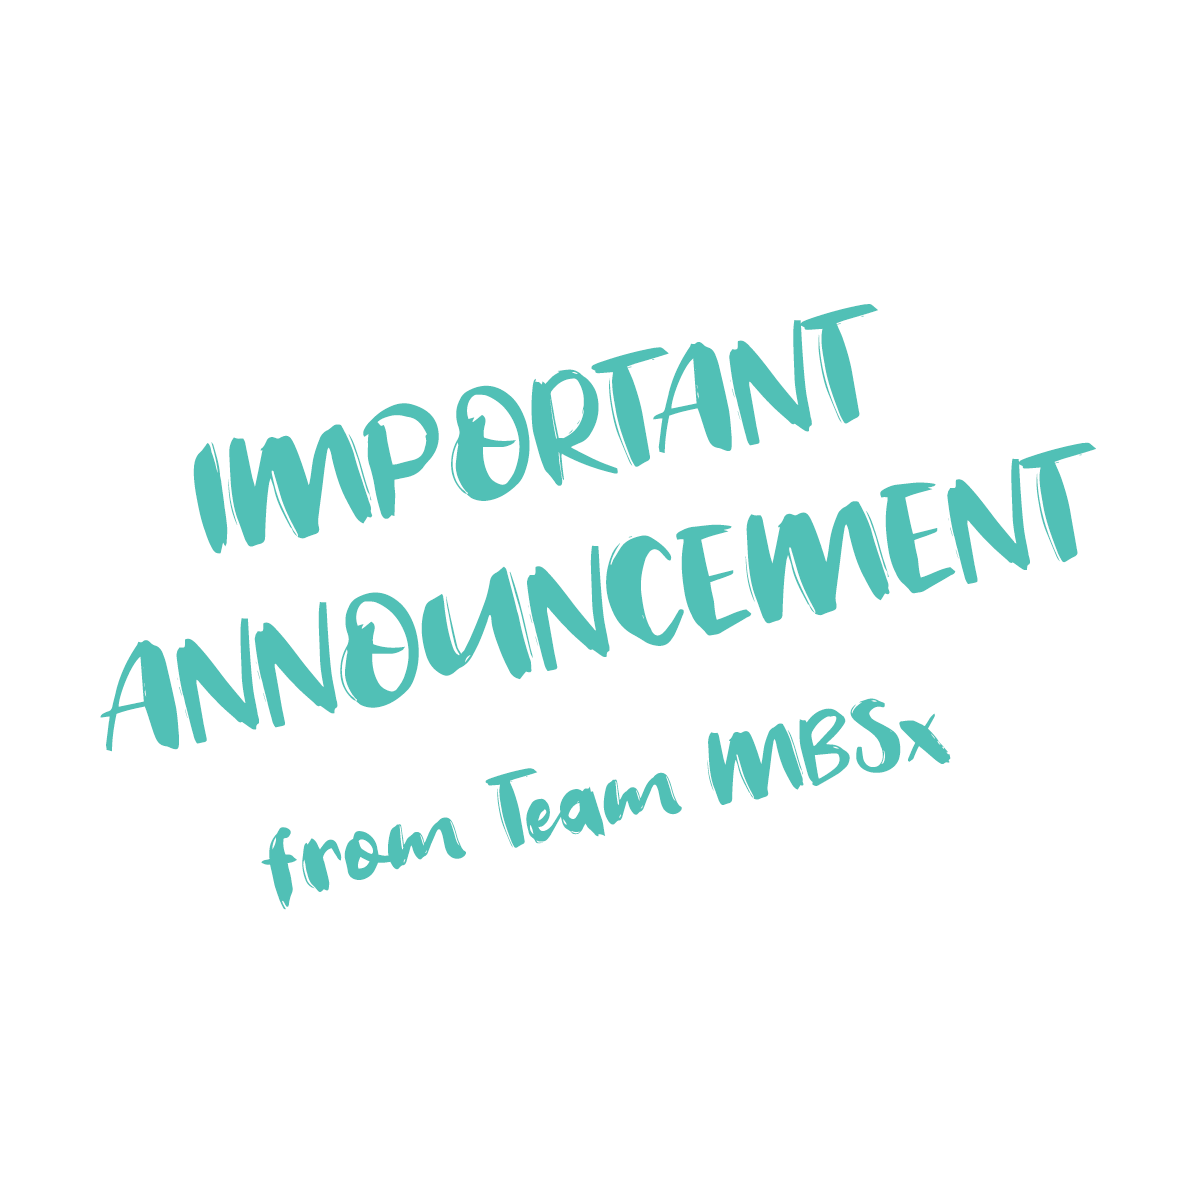 Important news from Team MBS